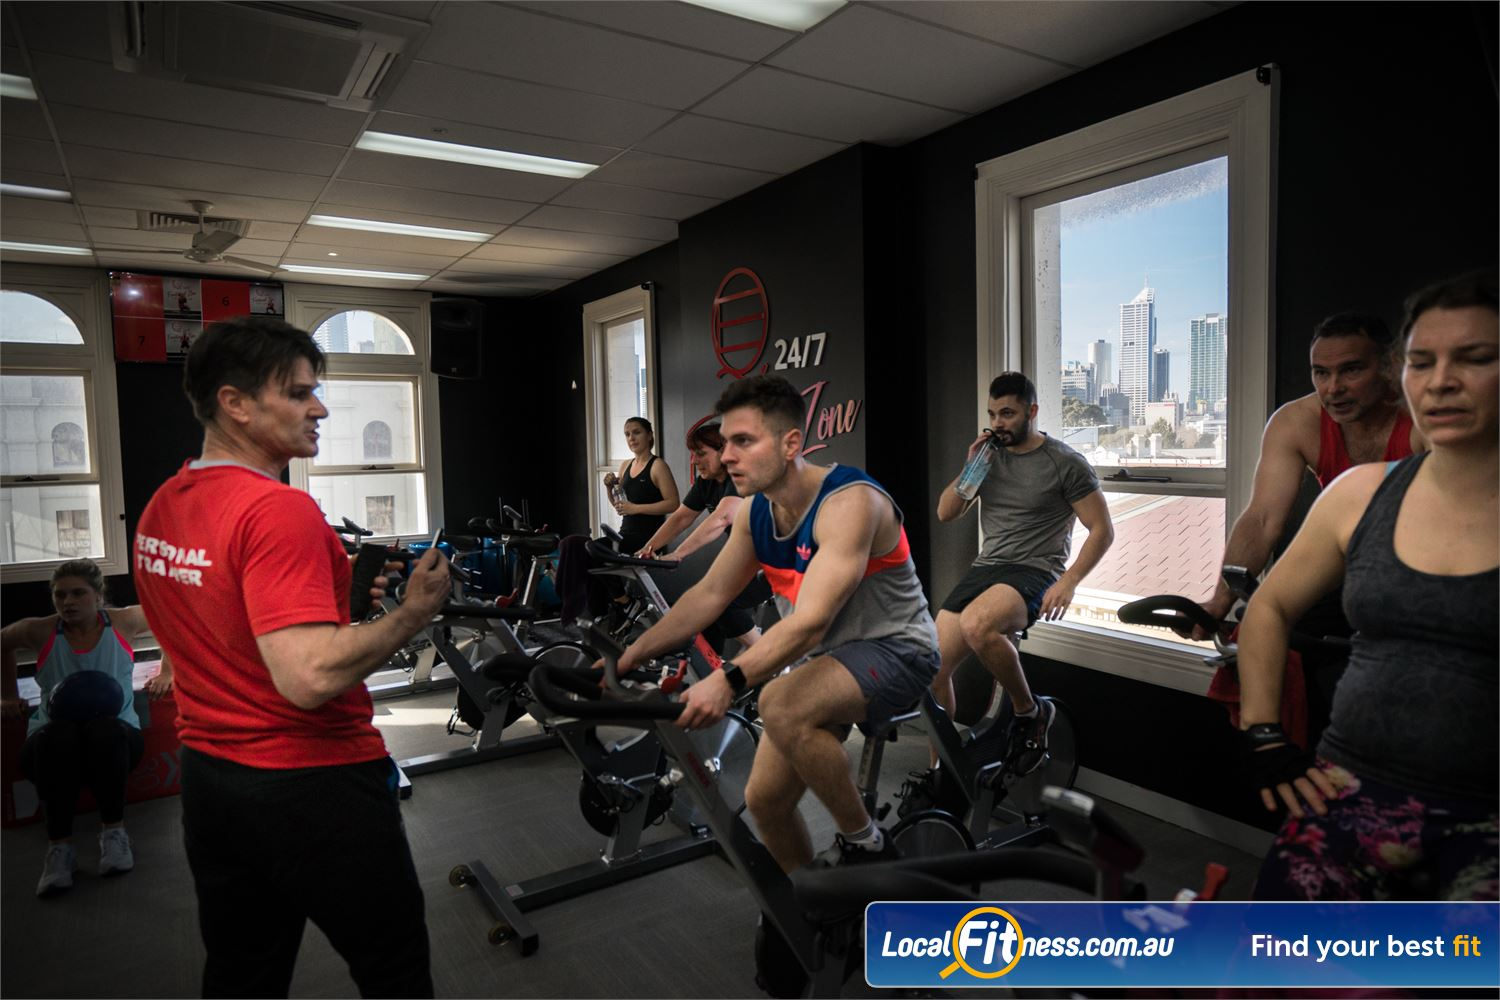 Equilibrium Health & Fitness 24/7 North Melbourne Our North Melbourne cycle classes is a great way to burn calories fast.